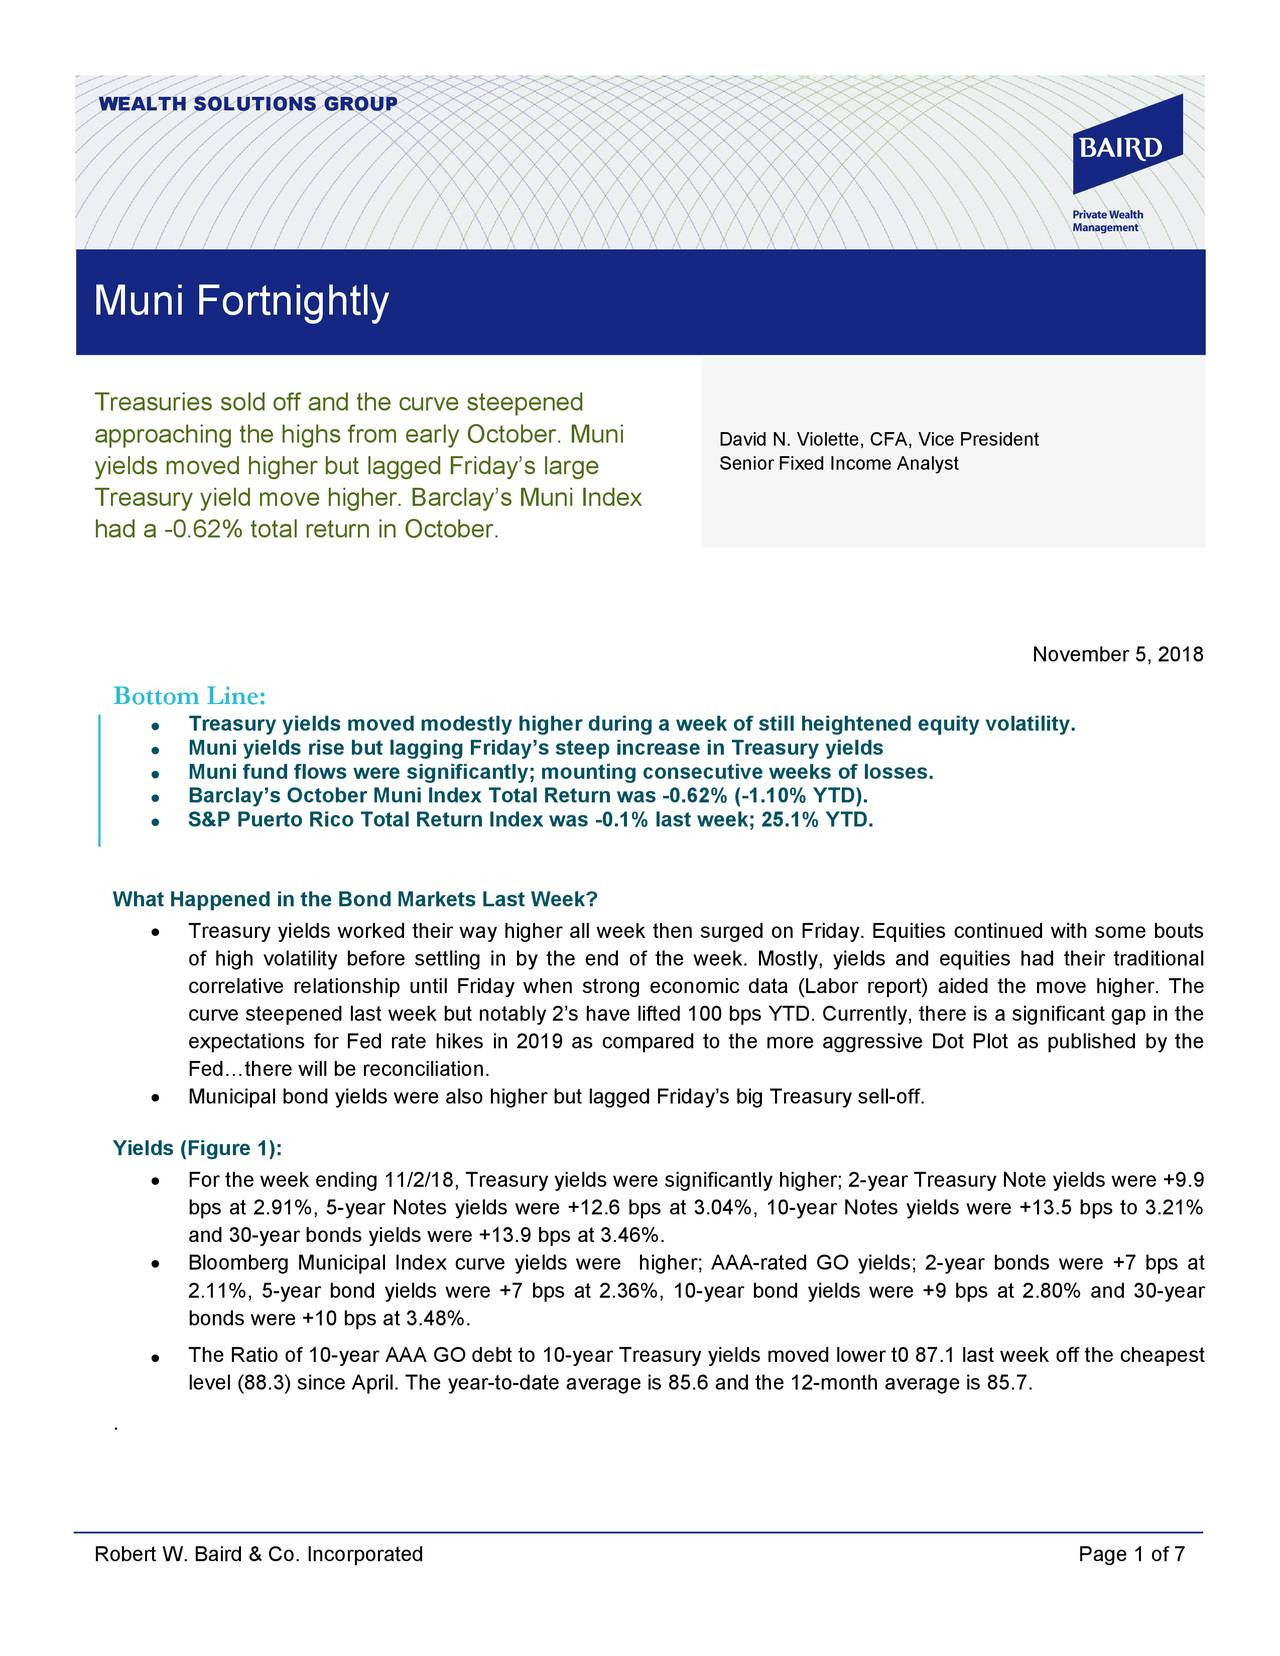 Muni Fortnightly Treasuries sold off and the curve steepened approaching the highs from early October. Muni David N. Violette, CFA, Vice President yields moved higher but lagged Friday's large Senior Fixed Income Analyst Treasury yield move higher. Barclay's Muni Index had a -0.62% total return in October. November 5, 2018 Bottom Line: • Treasury yields moved modestly higher during a week of still heightened equity volatility. • Muni yields rise but lagging Friday's steep increase in Treasury yields • Muni fund flows were significantly; mounting consecutive weeks of losses. • Barclay's October Muni Index Total Return was -0.62% (-1.10% YTD). • S&P Puerto Rico Total Return Index was -0.1% last week; 25.1% YTD. What Happened in the Bond Markets Last Week? • Treasury yields worked their way higher all week then surged on Friday. Equities continued with some bouts of high volatility before settling in by the end of the week. Mostly, yields and equities had their traditional correlative relationship until Friday when st rong economic data (Labor report) aided the move higher. The curve steepened last week but notably 2's have lifted 100 bps YTD. Currently, there is a significant gap in the expectations for Fed rate hikes in 2019 as compared to the more aggressive Dot Plot as published by the Fed…there will be reconciliation. • Municipal bond yields were also higher but lagged Friday's big Treasury sell-off. Yields (Figure 1): • For the week ending 11/2/18, Treasury yields were significantly higher; 2-year Treasury Note yields were +9.9 bps at 2.91%, 5- year Notes yields were +12.6 bps at 3.04%, 10- year Notes yields were +13.5 bps to 3.21% and 30-year bonds yields were +13.9 bps at 3.46%. • Bloomberg Municipal Index curve yields were higher; AAA -rated GO yields; 2- year bonds were +7 bps at 2.11%, 5-year bond yields were +7 bps at 2.36%, 10- year bond yields were +9 bps at 2.80% and 30- year bonds were +10 bps at 3.48%. The Ratio of 10-year AAA GO debt to 10-year Treasury yields moved lower t0 87.1 last week off the cheapest • level (88.3) since April. The year-to-date average is 85.6 and the 12-month average is 85.7. . Robert W. Baird & Co. Incorporated Page 1 of 7